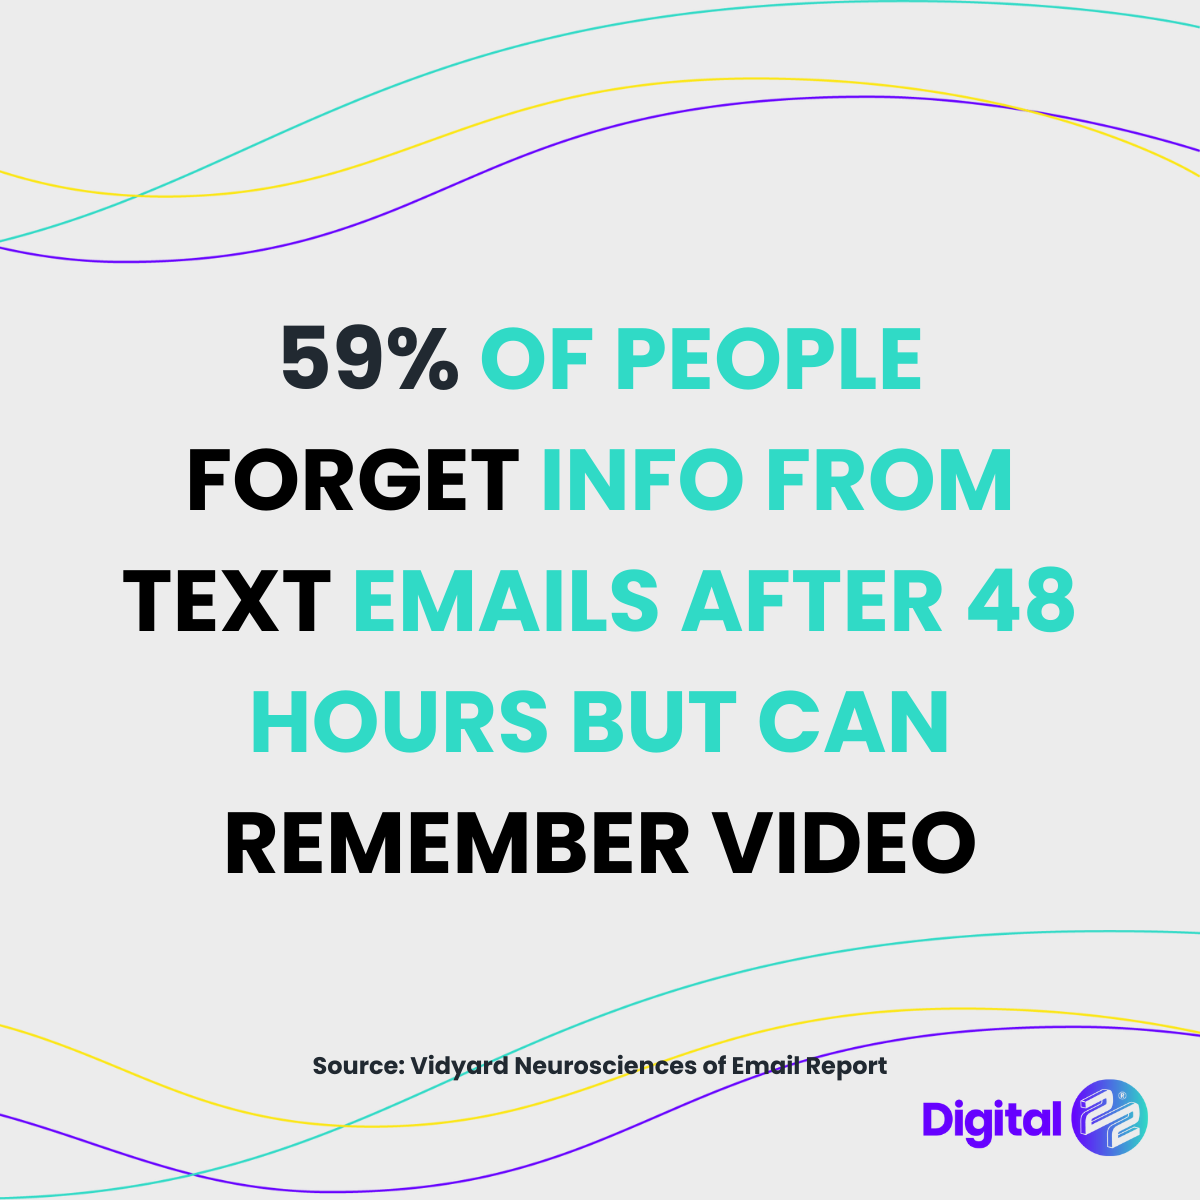 people forget text remember video